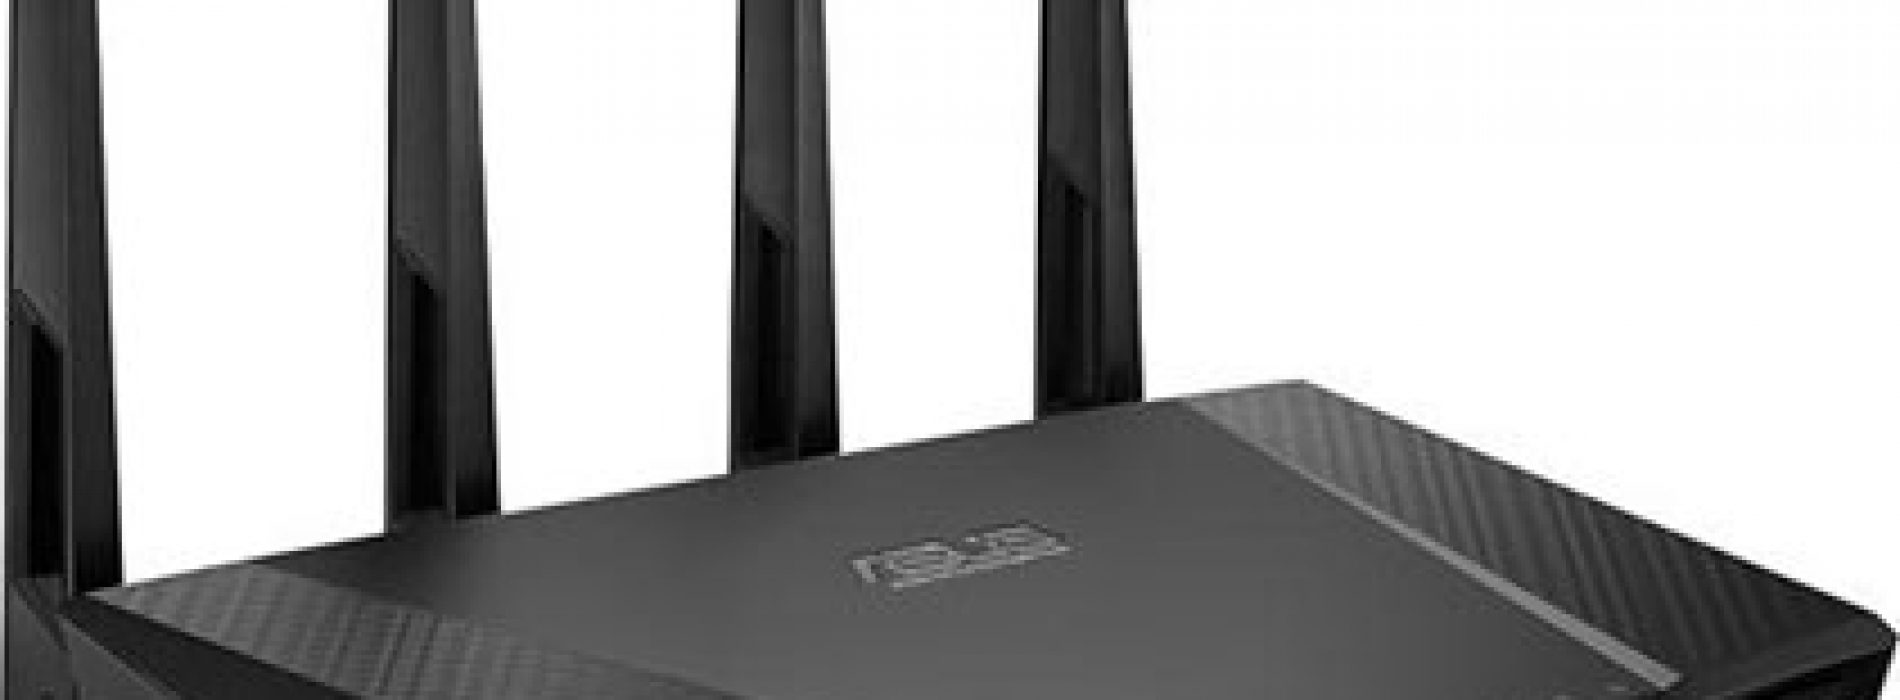 ASUS RT-AC87: Dual-band Wireless-AC2400 Gigabit Router